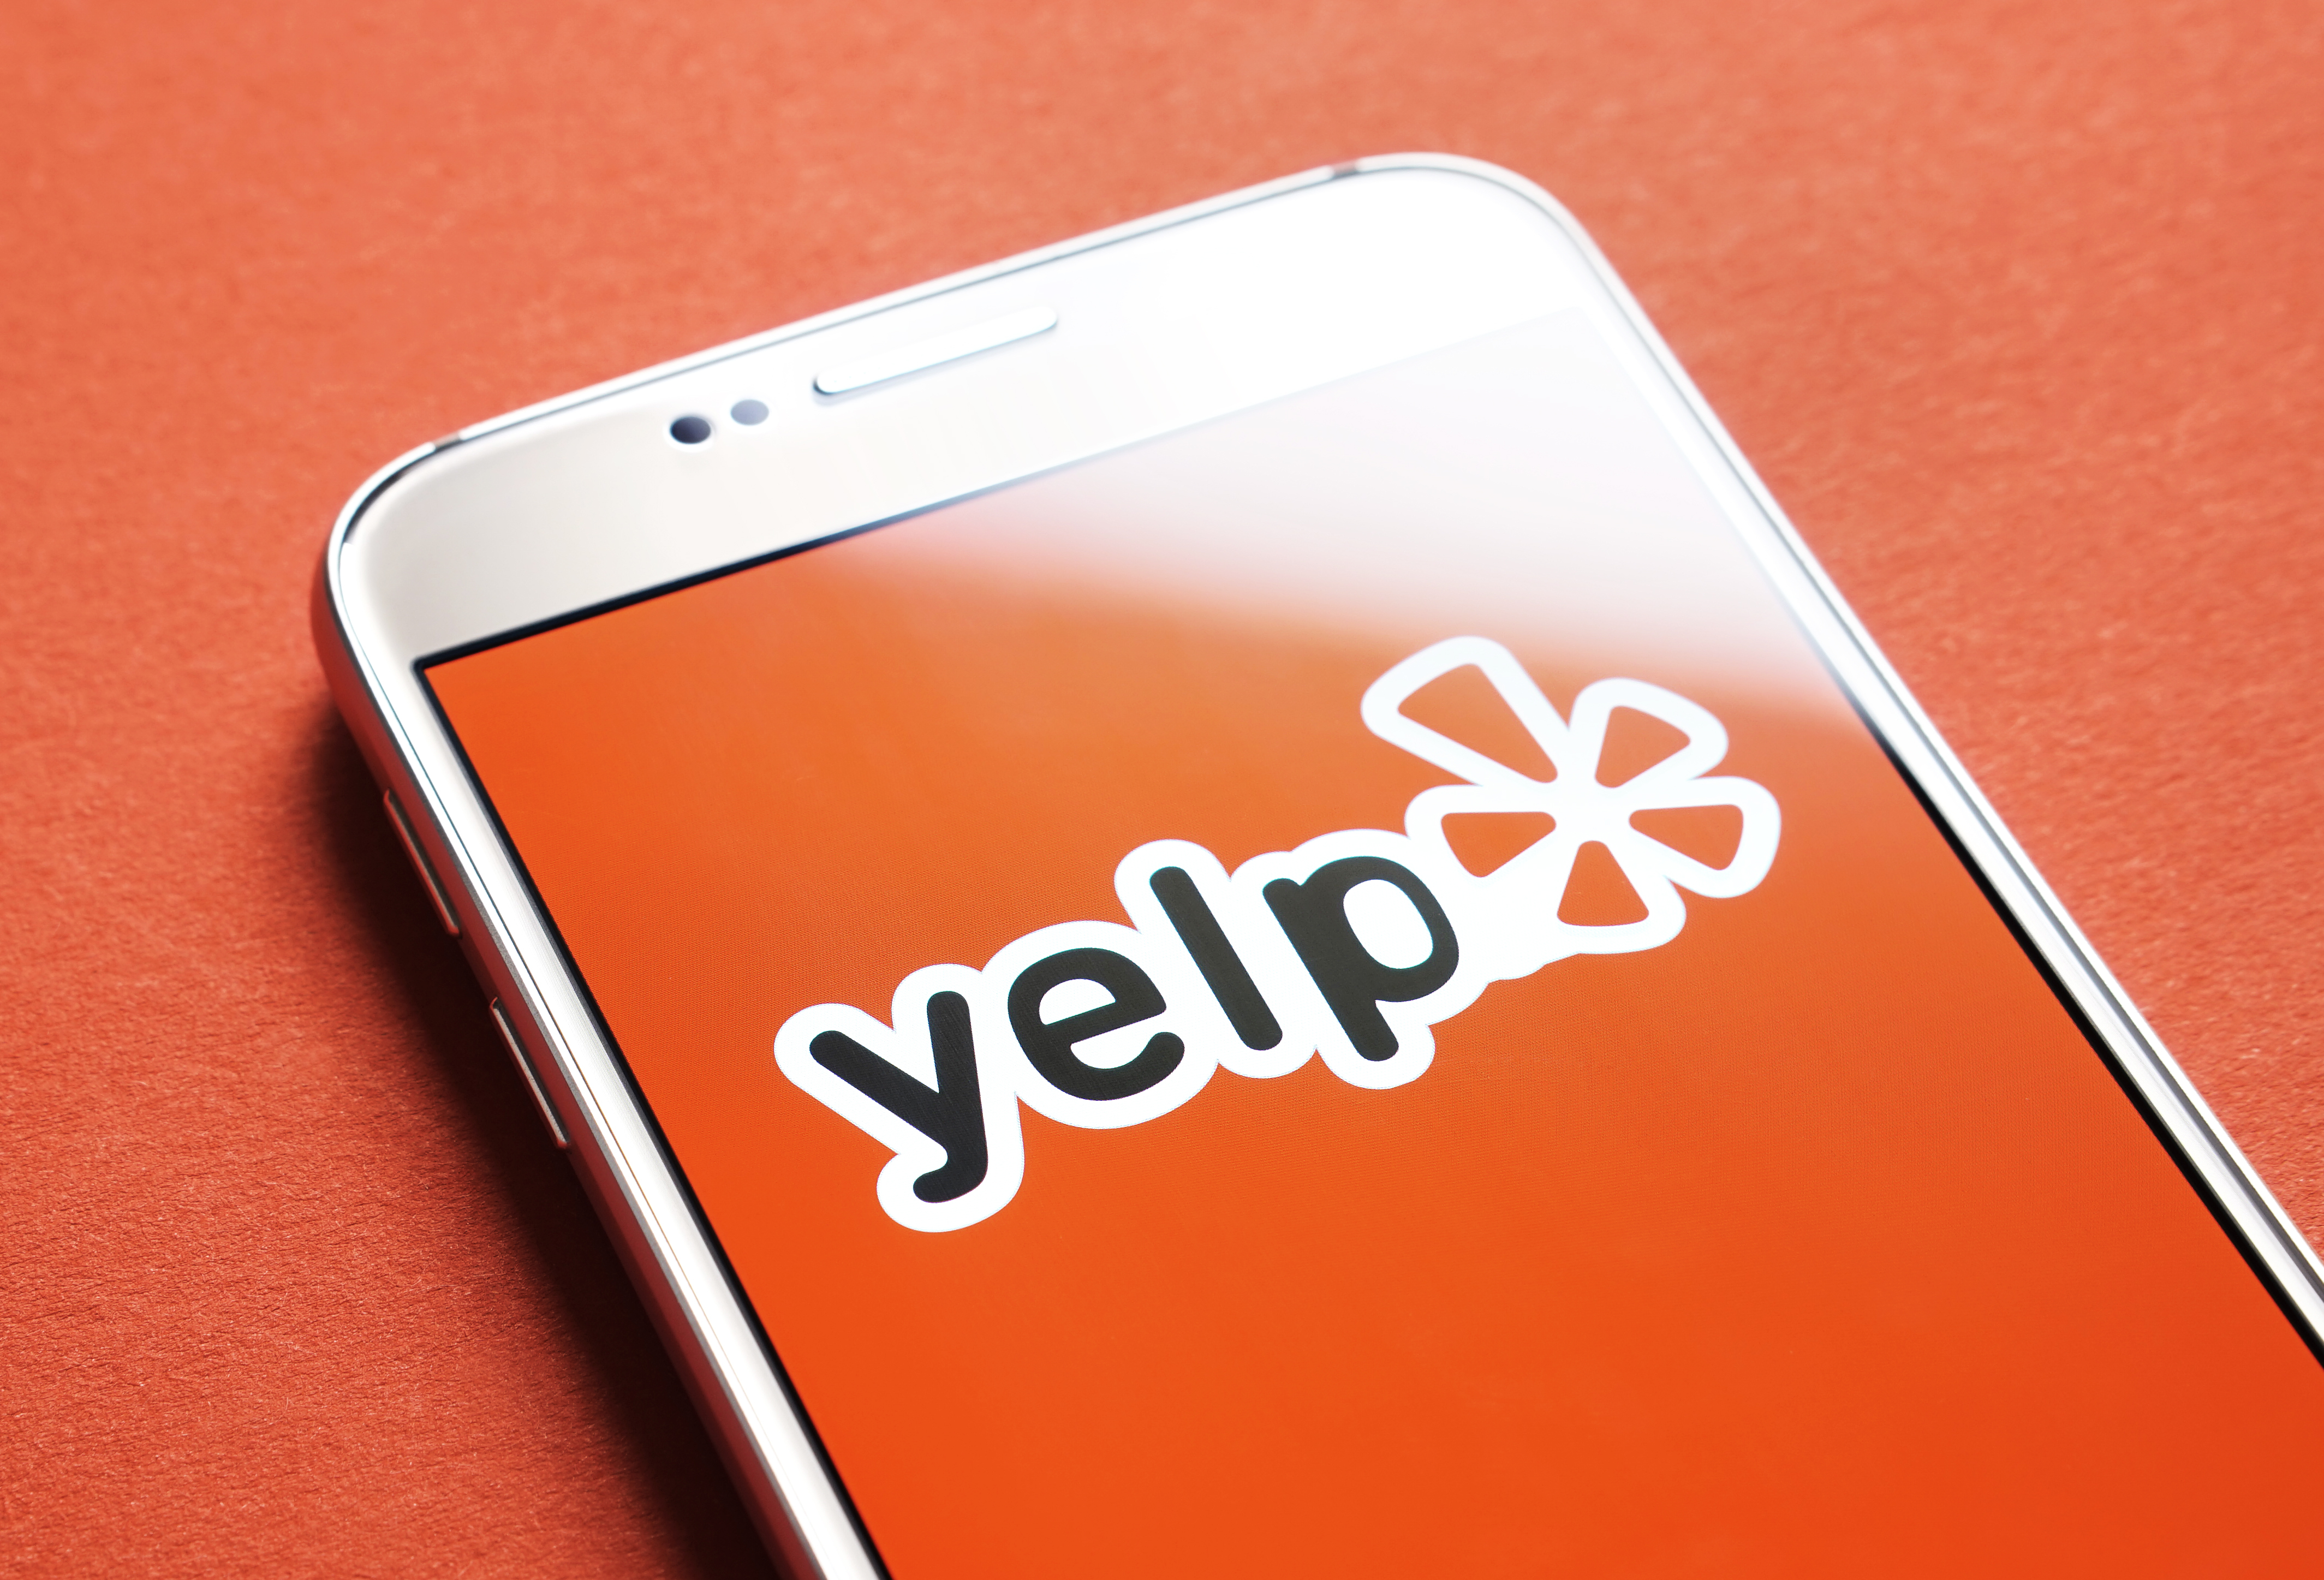 Yelp red screen and logo on a smartphone.